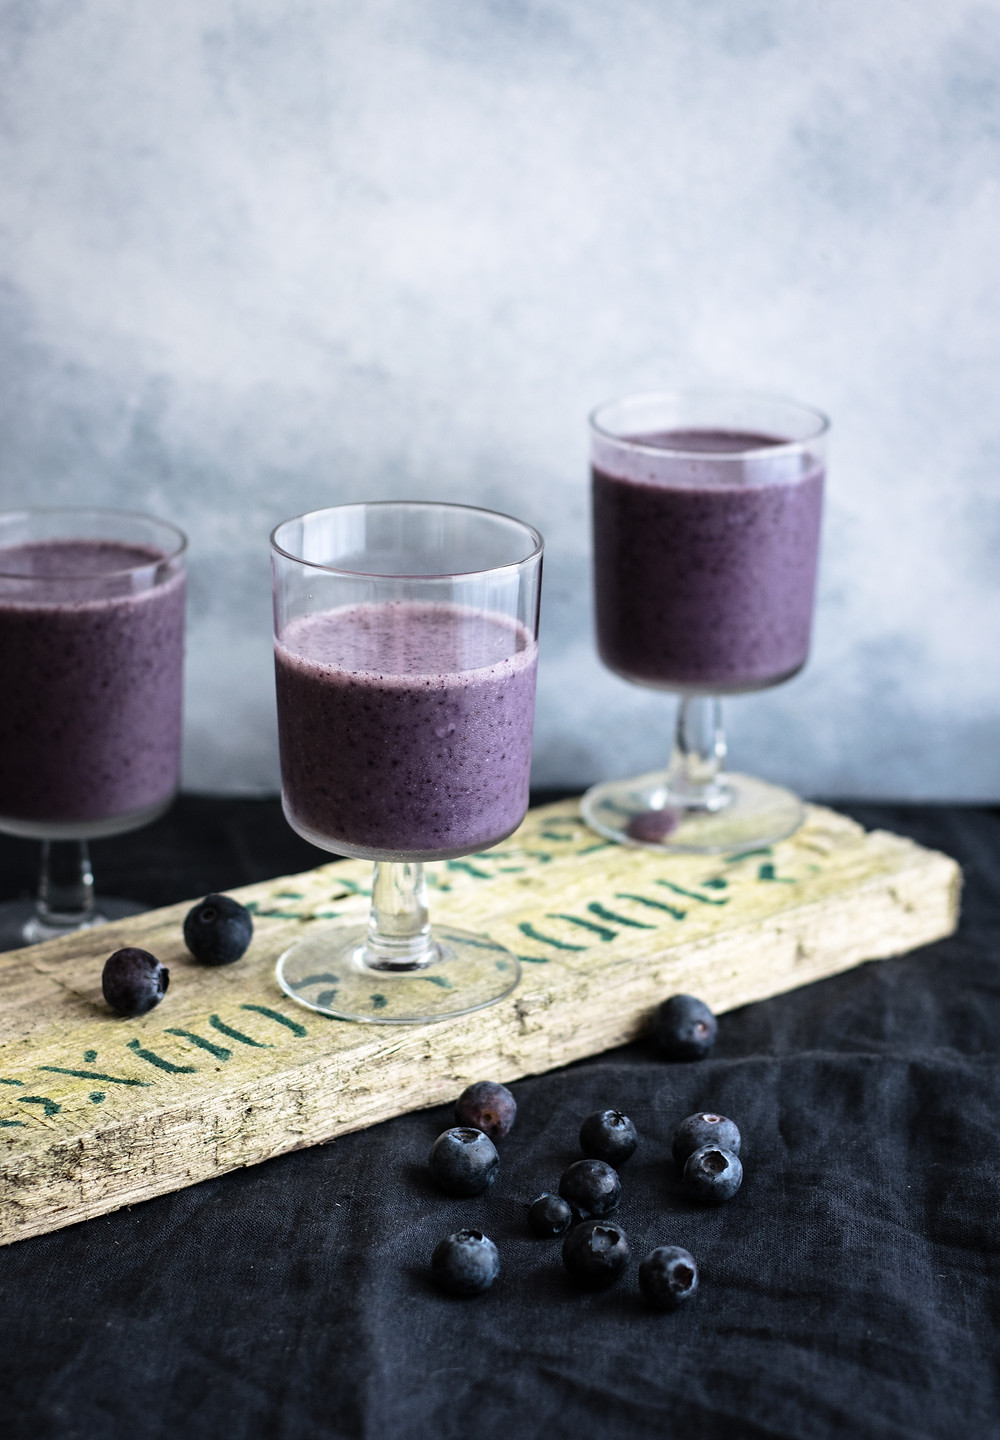 Food photography, bluberry, bluberry shake,